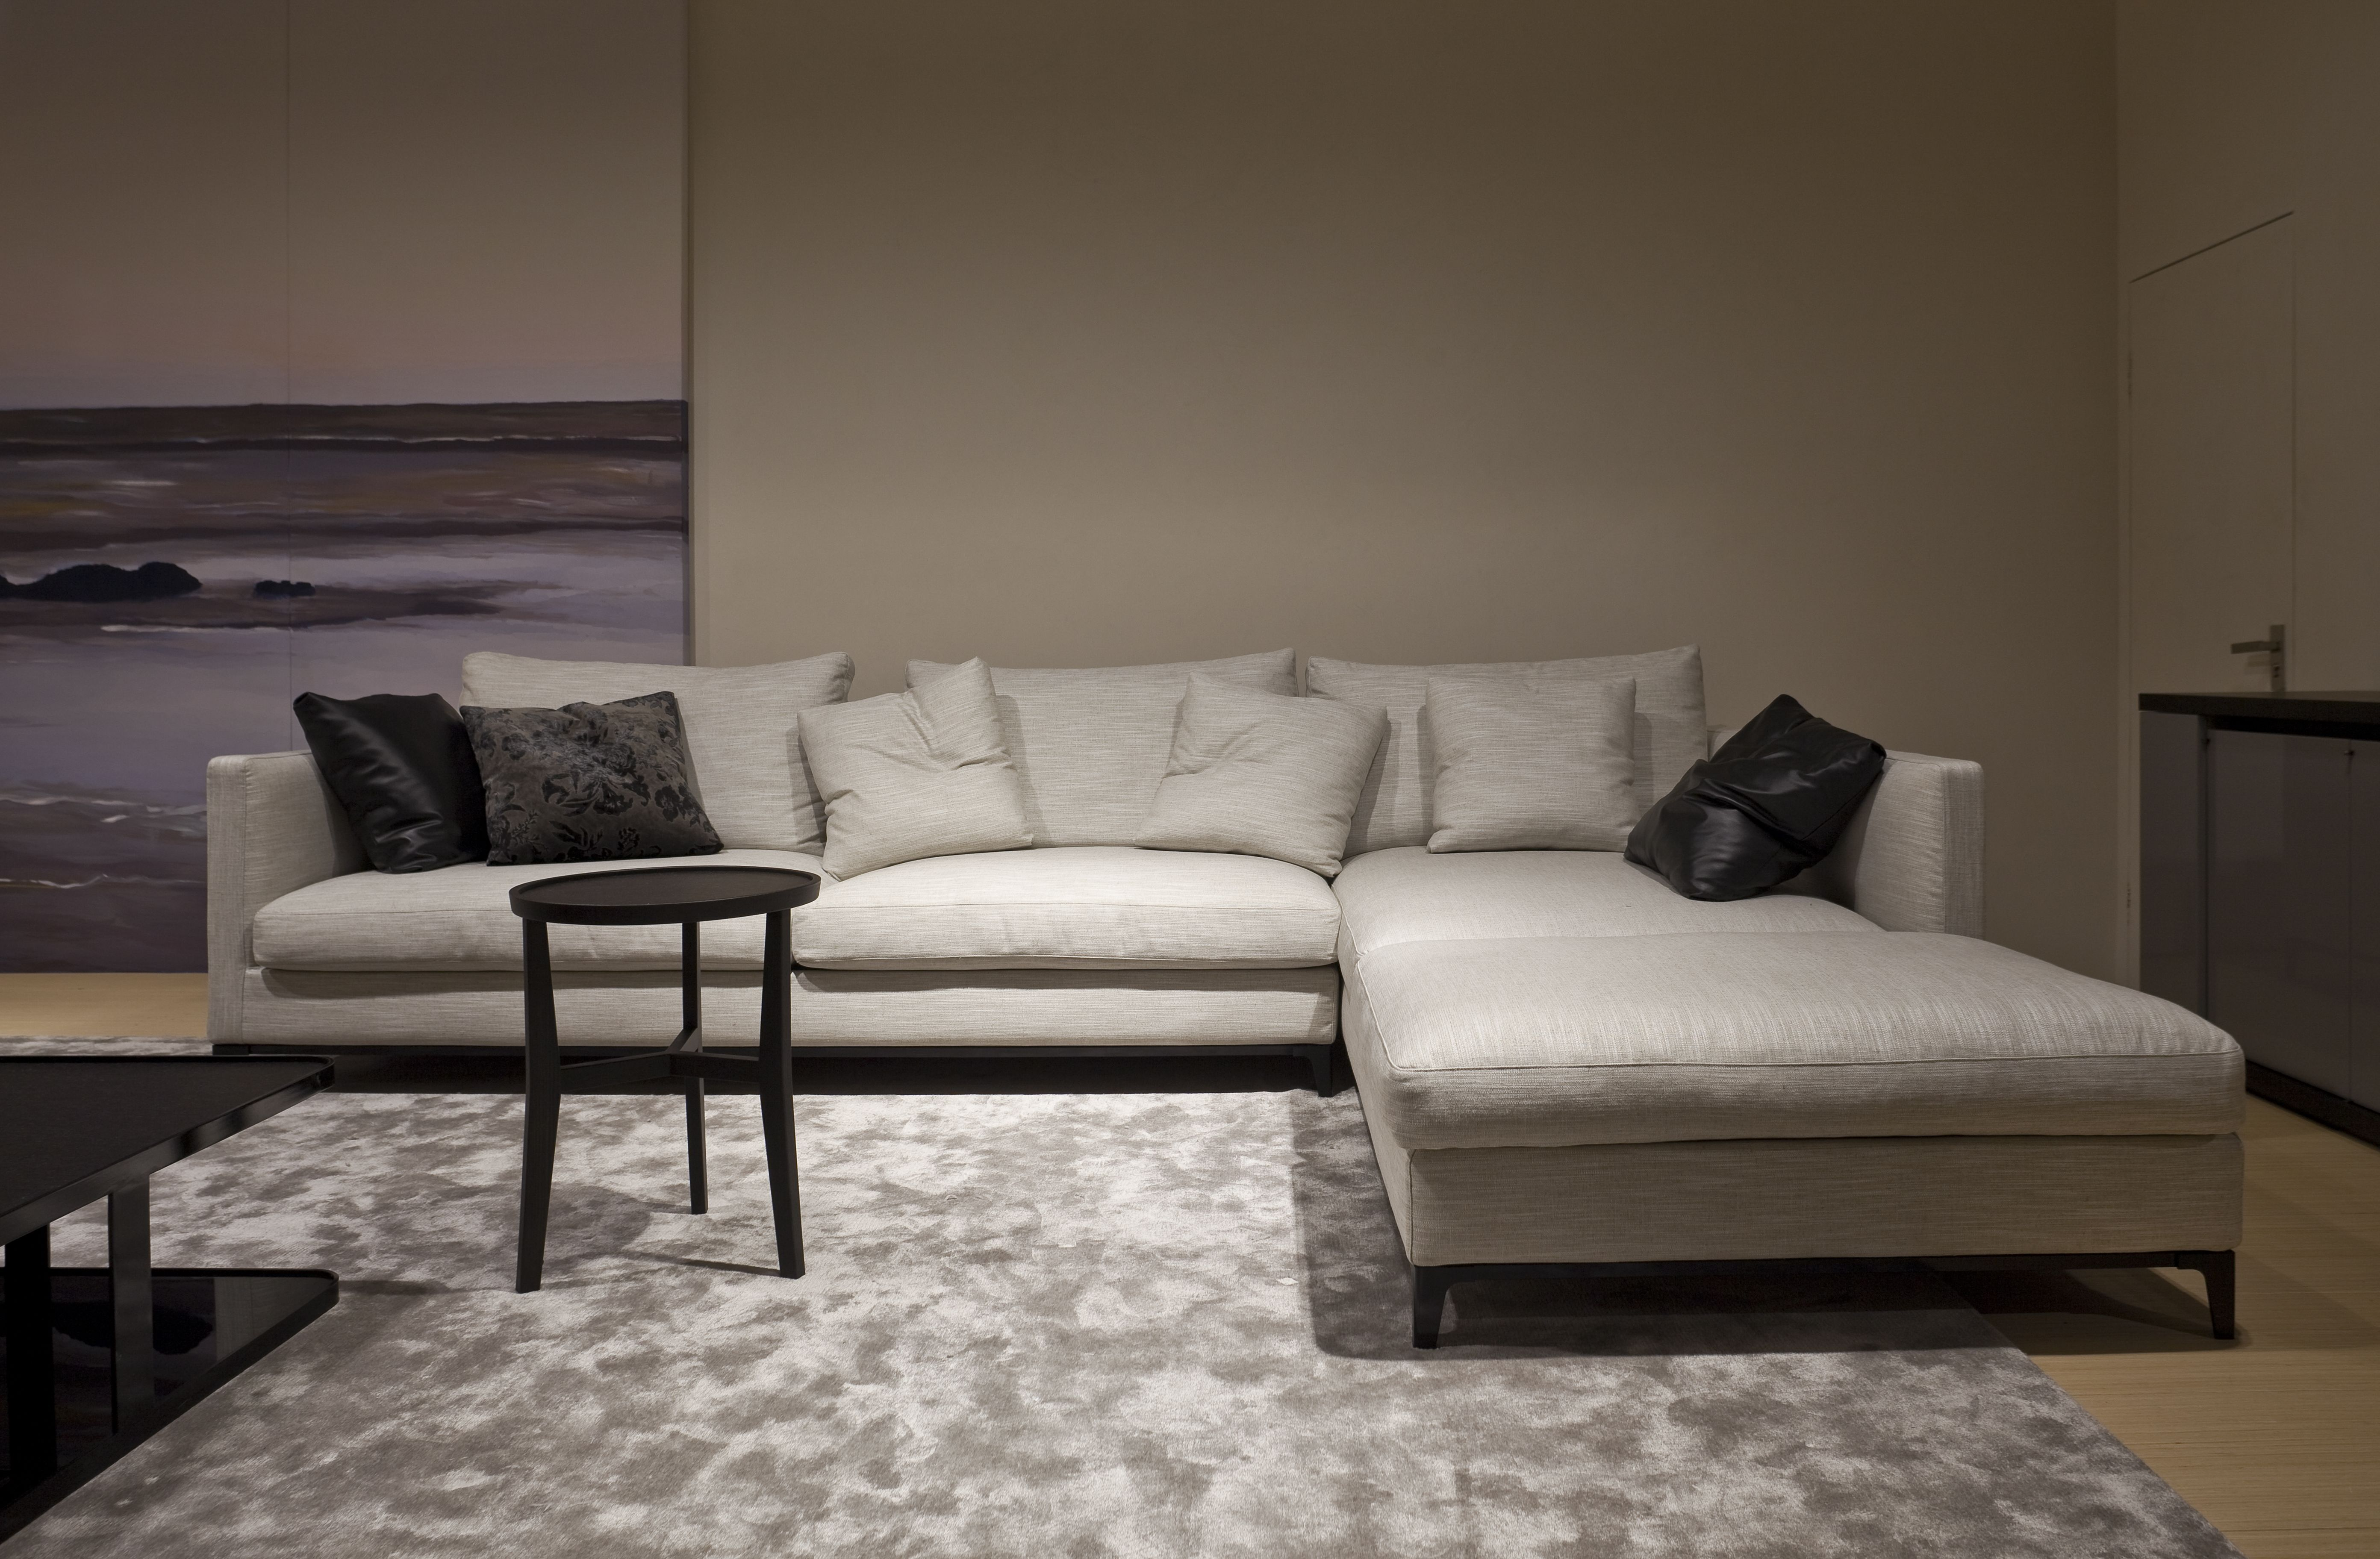 Lazytime plus sofa camerich - Camerich Sofa Meizai Interiors Lounge Dining Pinterest Commercial Furniture Commercial And Living Rooms